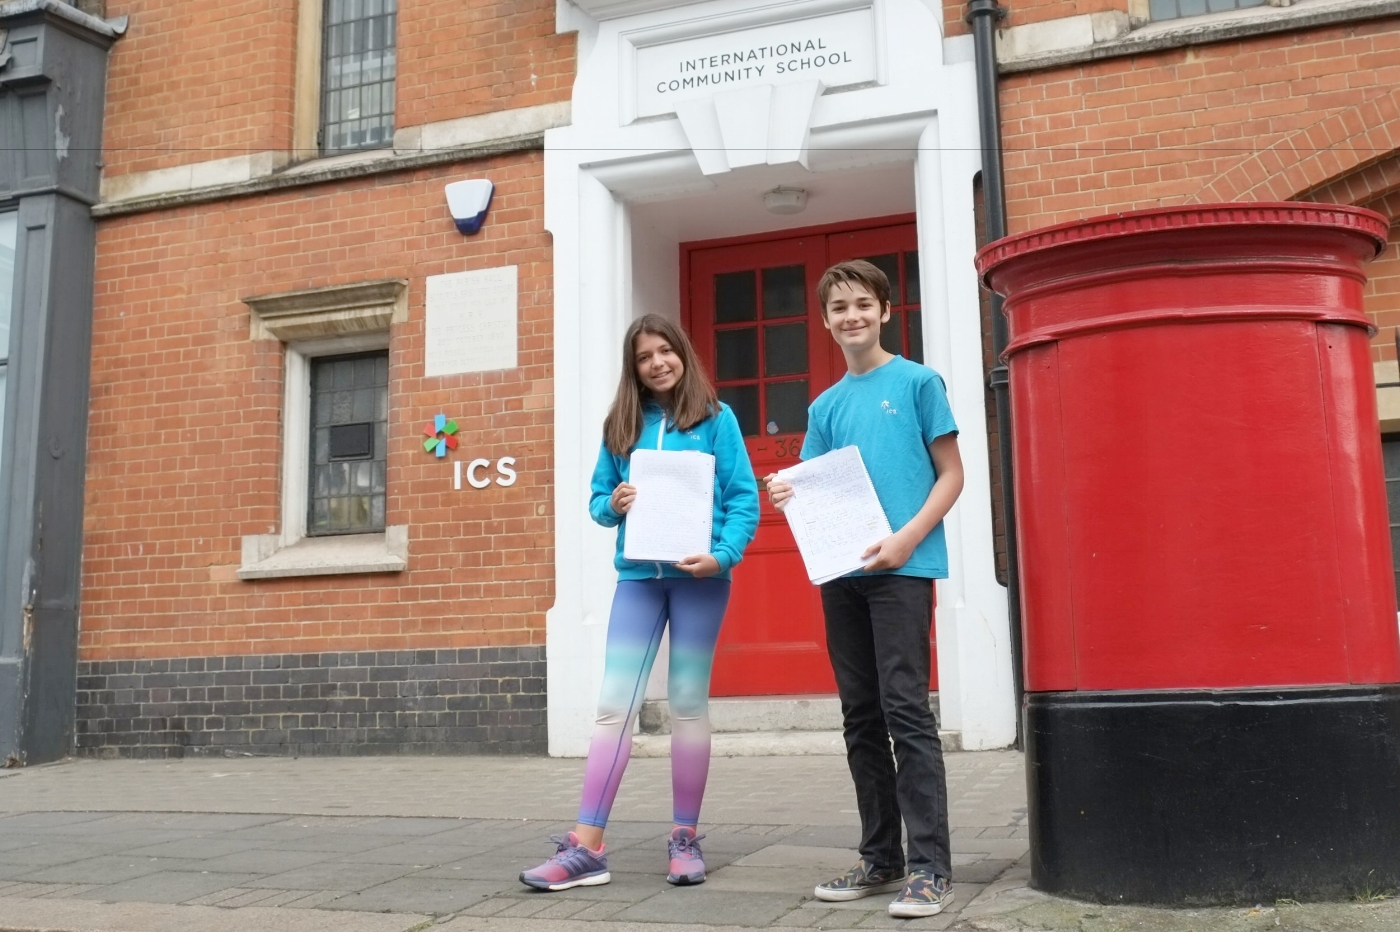 ICS students go through in BBC writing competition